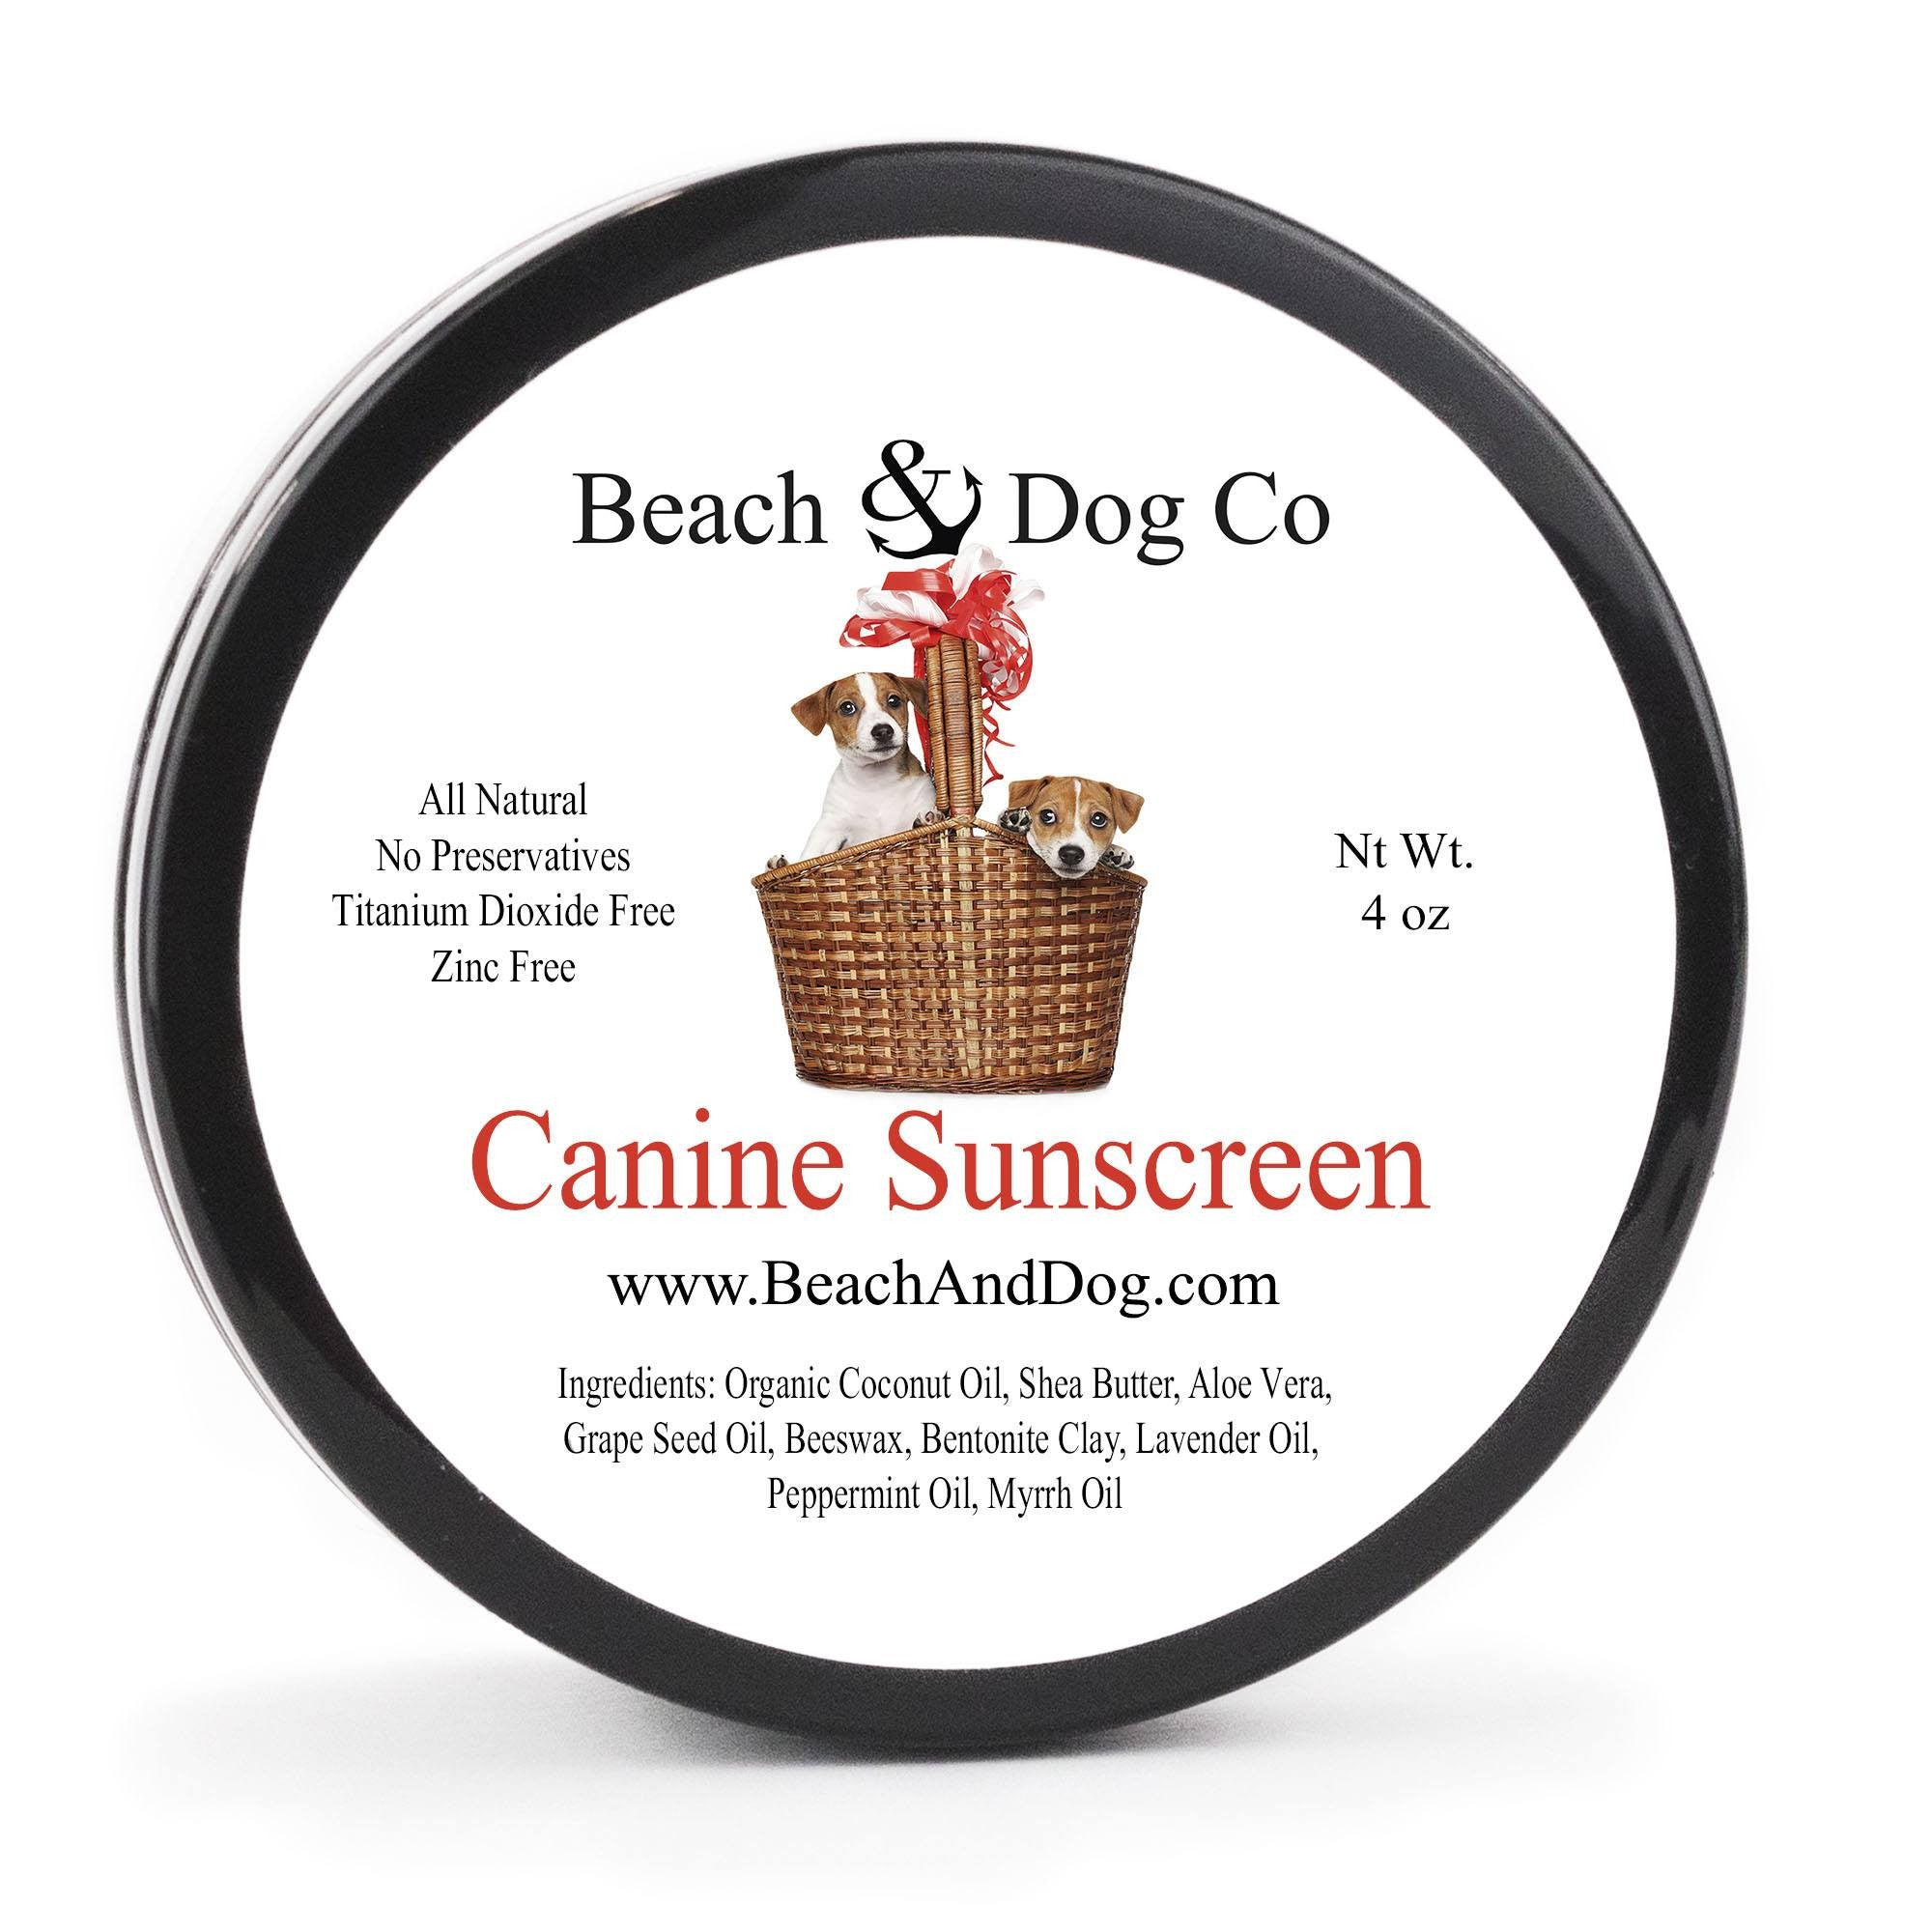 Canine Sunscreen (4 oz) Zinc and